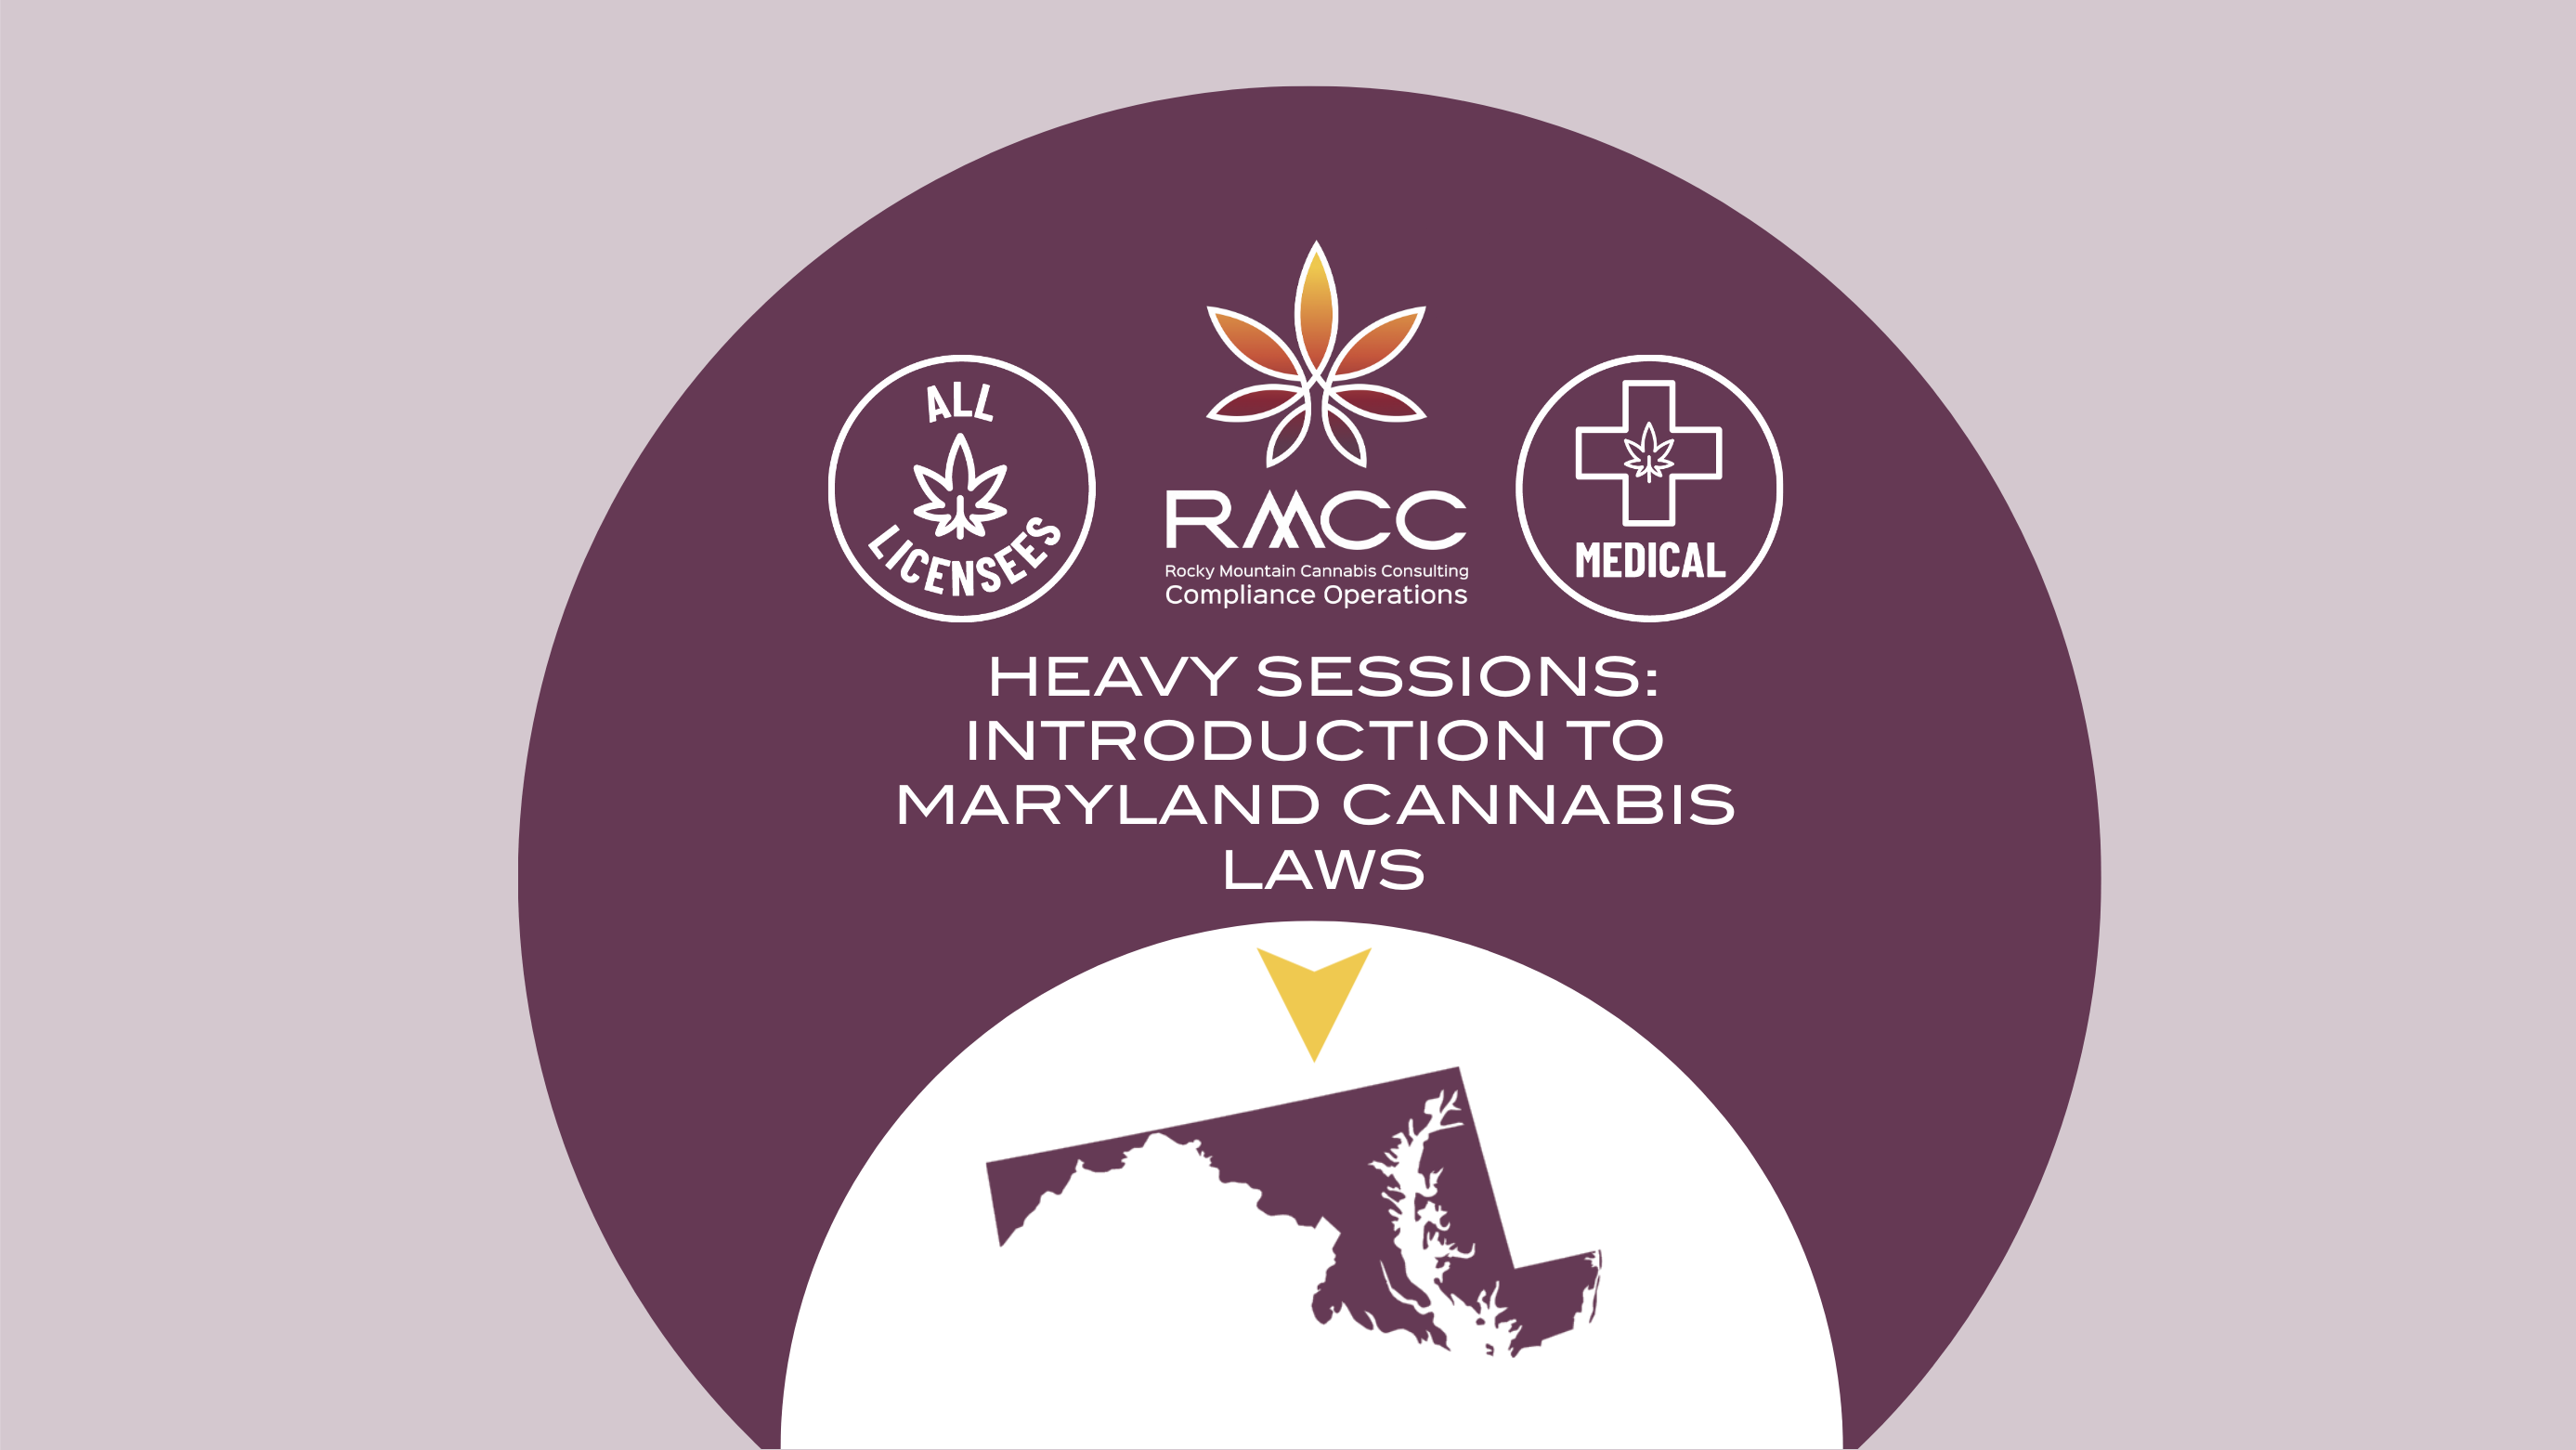 RMCC HEAVY SESSION Introduction to Maryland Cannabis Laws